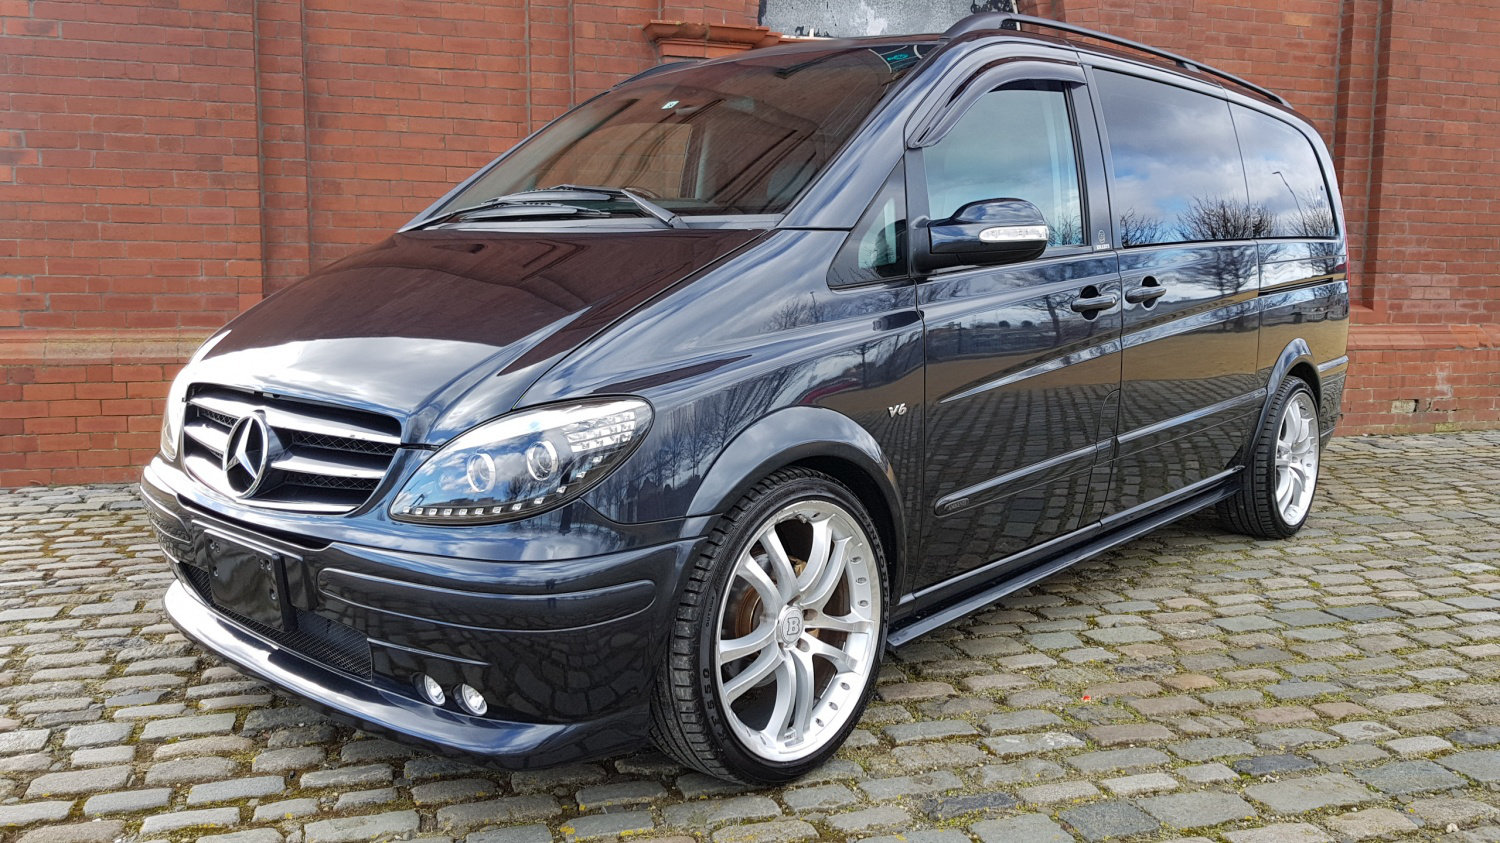 2004 MERCEDES-BENZ VIANO 3.2 LONG WHEEL BASE LWB AMBIENTE BRABUS  For Sale (picture 1 of 5)